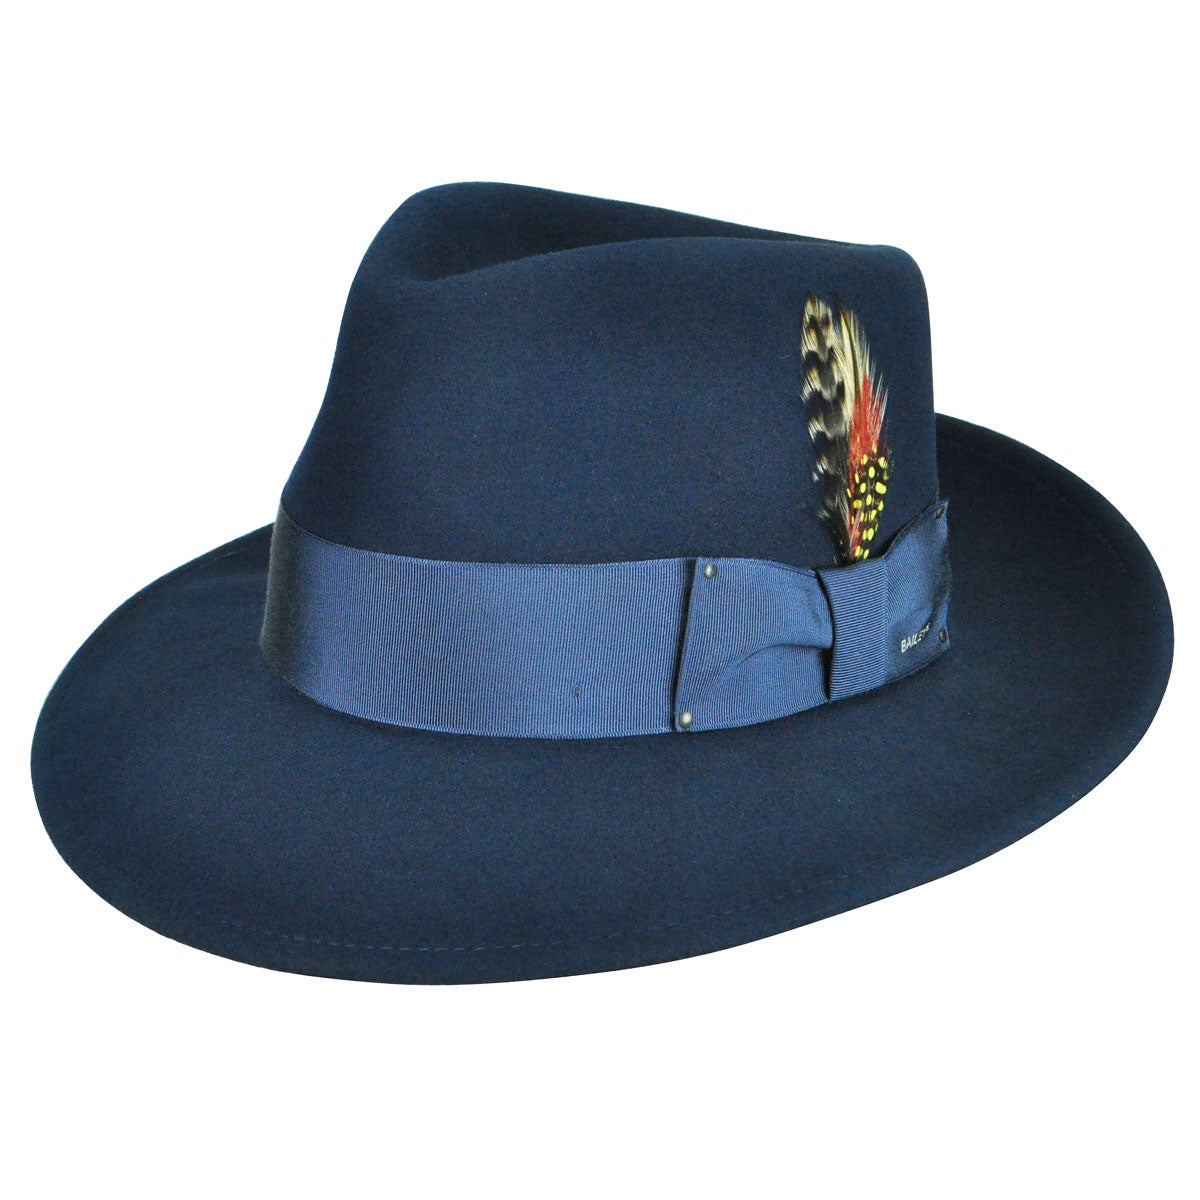 Rockabilly Men's Clothing Fedora Litefelt reg Hat $90.00 AT vintagedancer.com